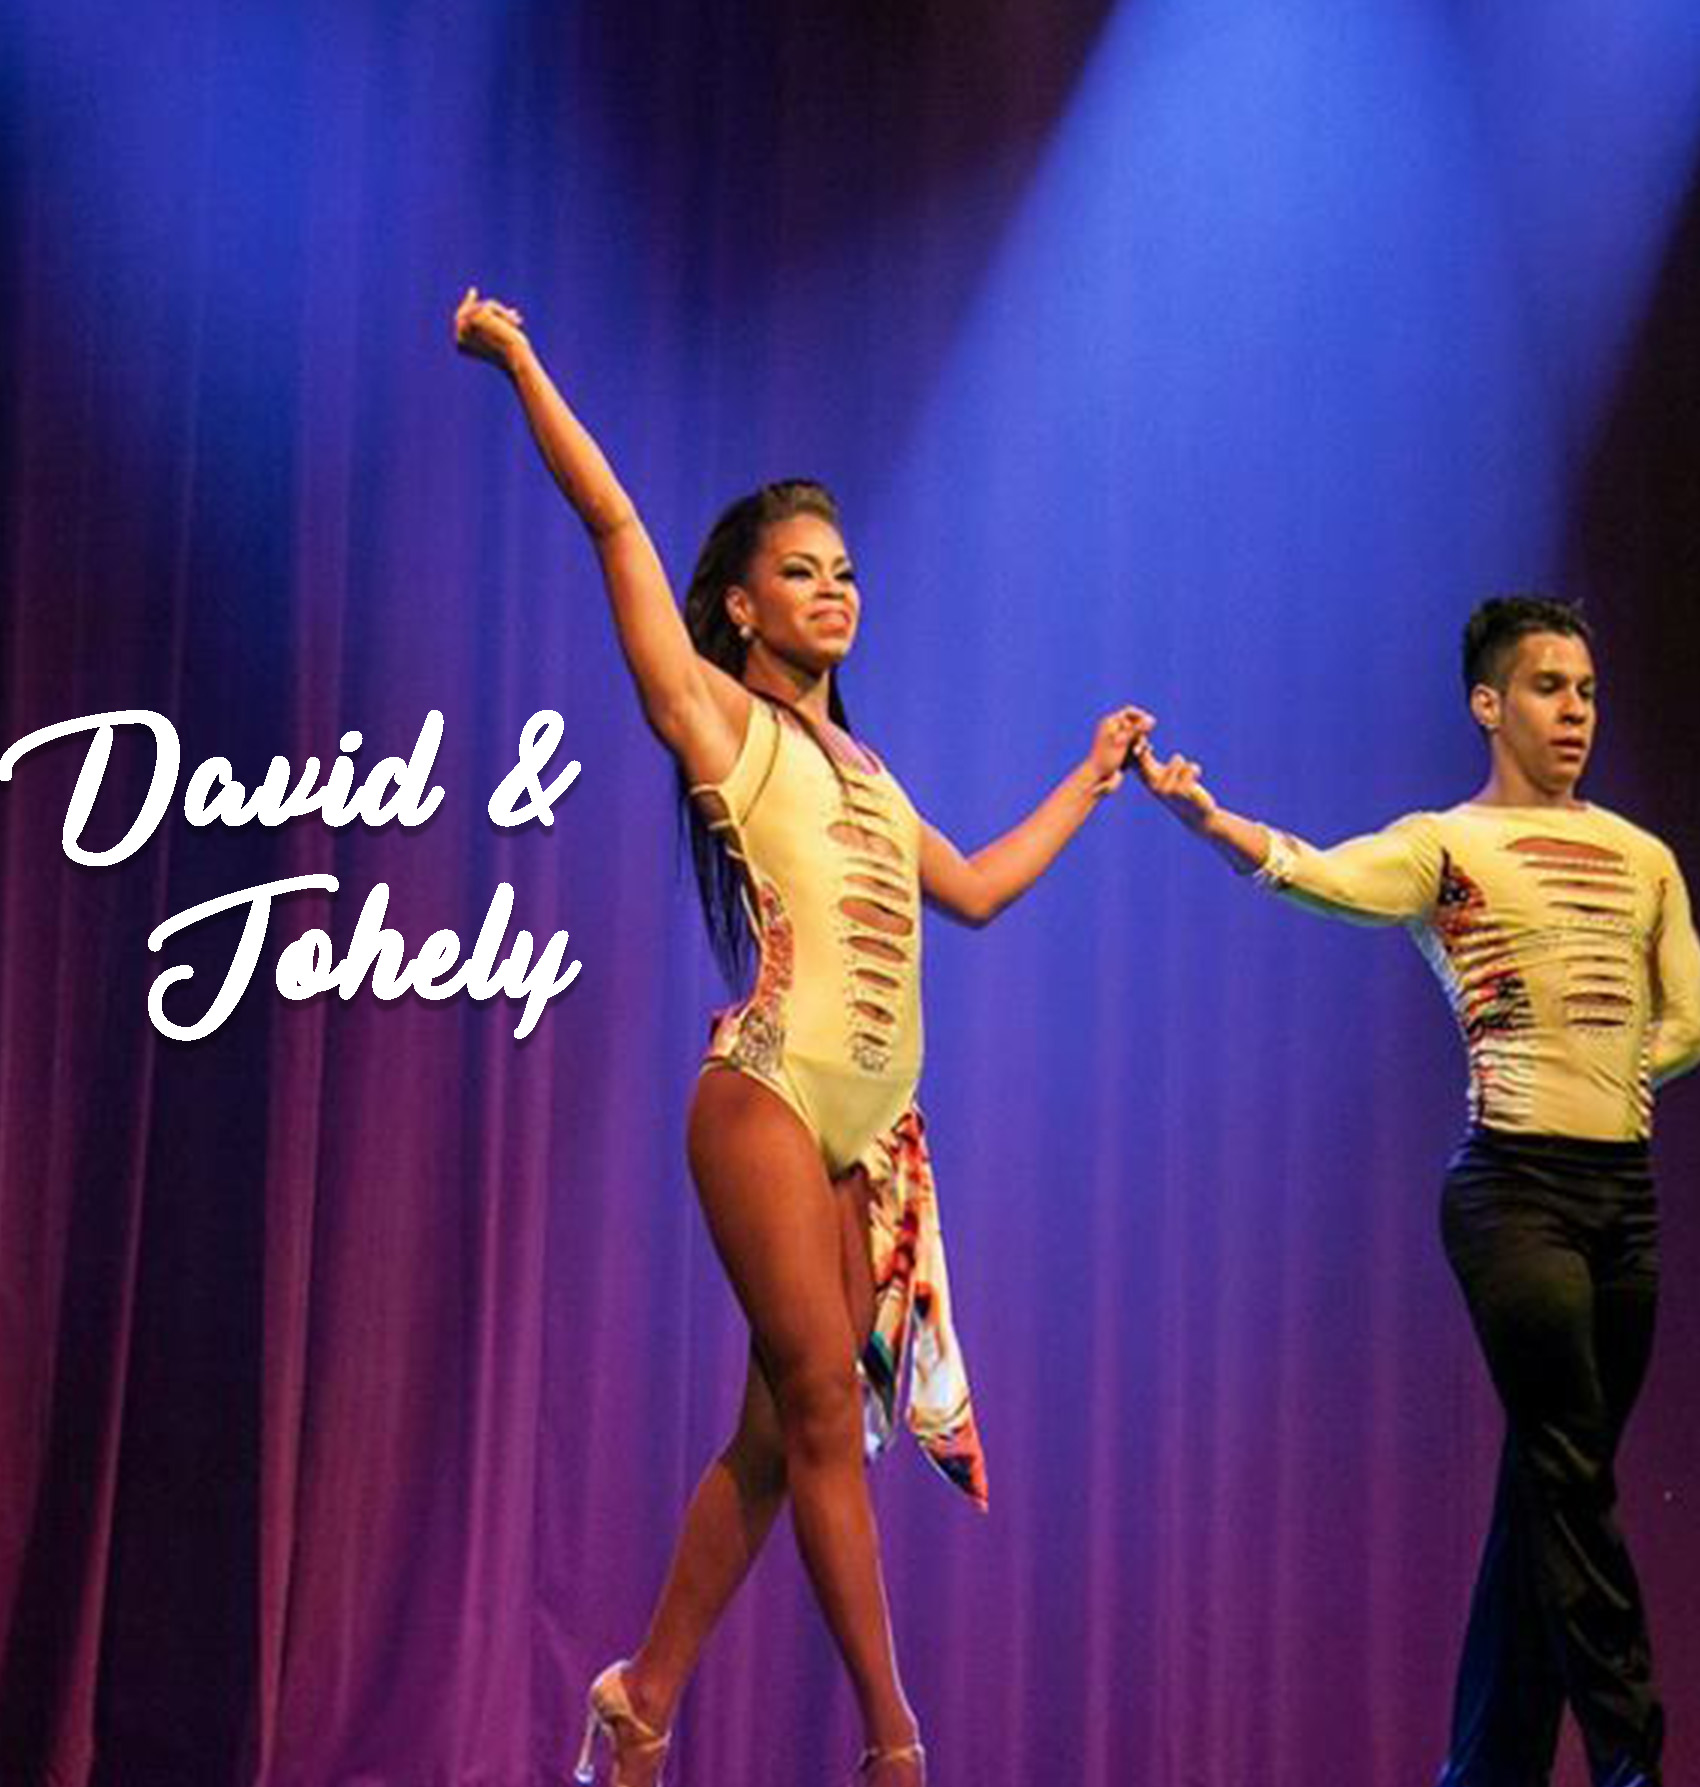 """VENEZUELA  David & Johely began in this fascinating world of dance when they were 15 and 11 years old. They have trained in different genres such as Salsa, Bachata, Jazz, Ballet, Folk, etc.  David & Johely had the opportunity to dance with few prestigious dance companies in Venezuela, participated in TV programs, dance with national artists representing Venezuela and now Ireland in numerous events and dance championships around the world, they have also obtained many titles, the most important so far the """"South American Salsa champions""""  After 4 years living in Ireland they decided to go after a new project, a place where people could learn more about dancing in general, The Real Dance Studio  Where to find us?   facebook.com/therealdancestudio/"""